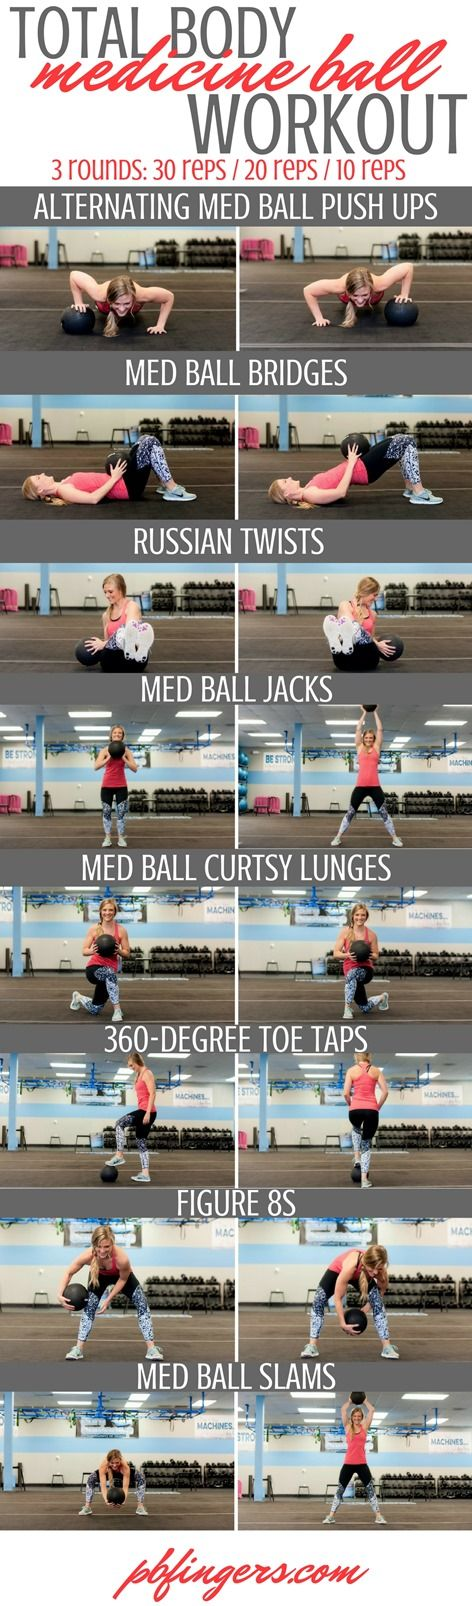 Total Body Medicine Ball Workout http://www.pbfingers.com/total-body-medicine-ball-workout/ All you need is a medicine ball to complete this Total Body Medicine Ball workout! Your upper and lower body and your core will feel the burn during this workout that targets the whole body in a decreasing repetition format.